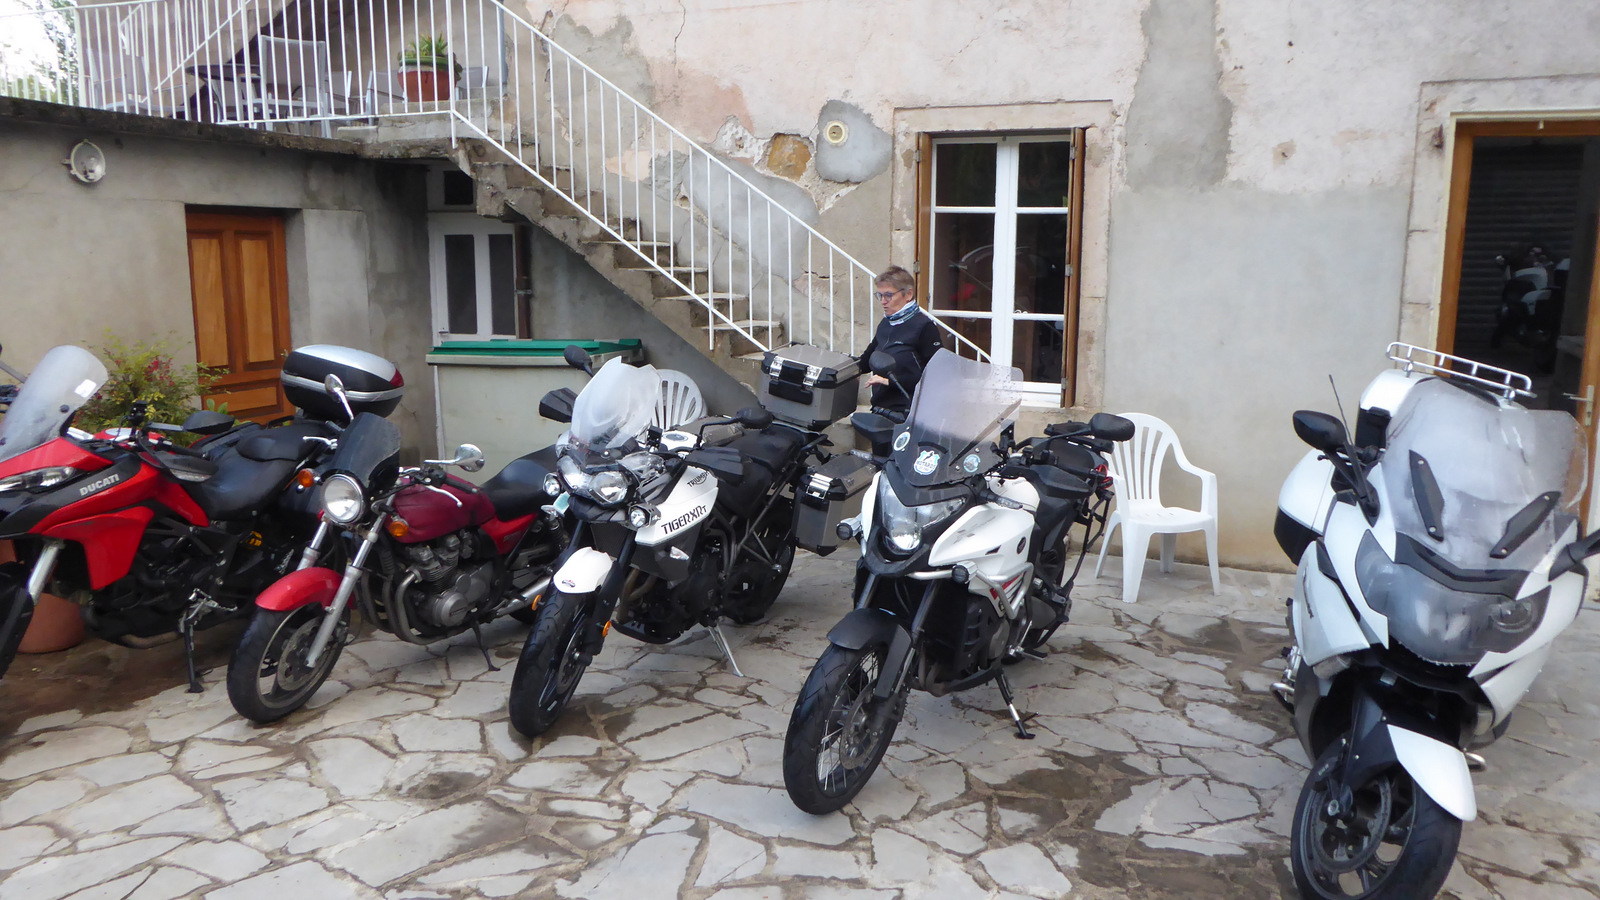 ... on range les motos